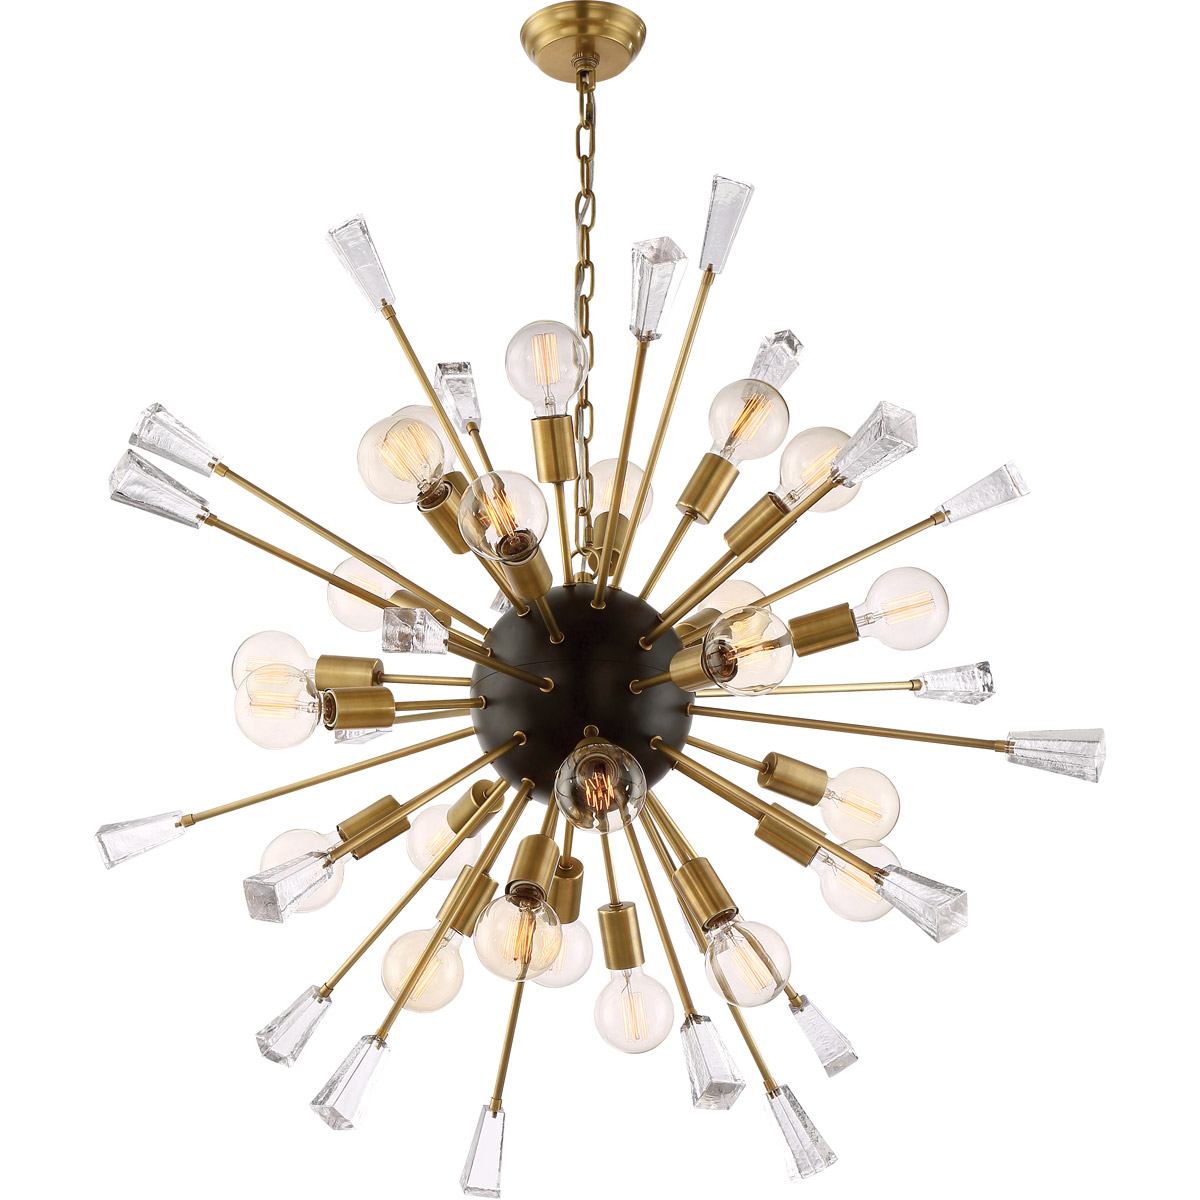 Muse chandelier 38 brass